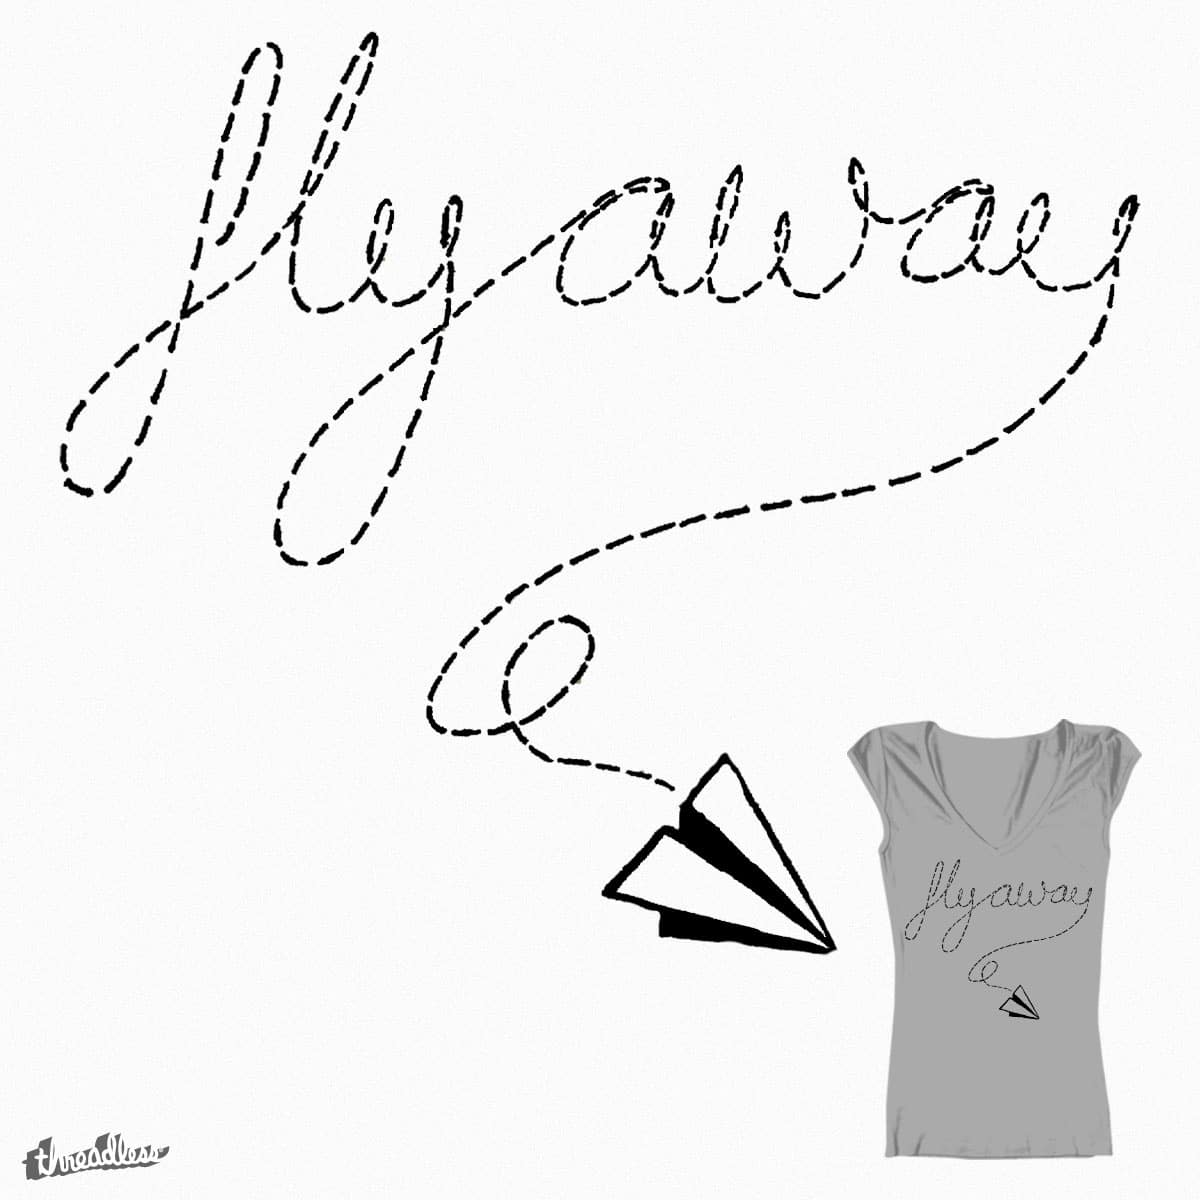 Come Fly With Me by autumnparis on Threadless